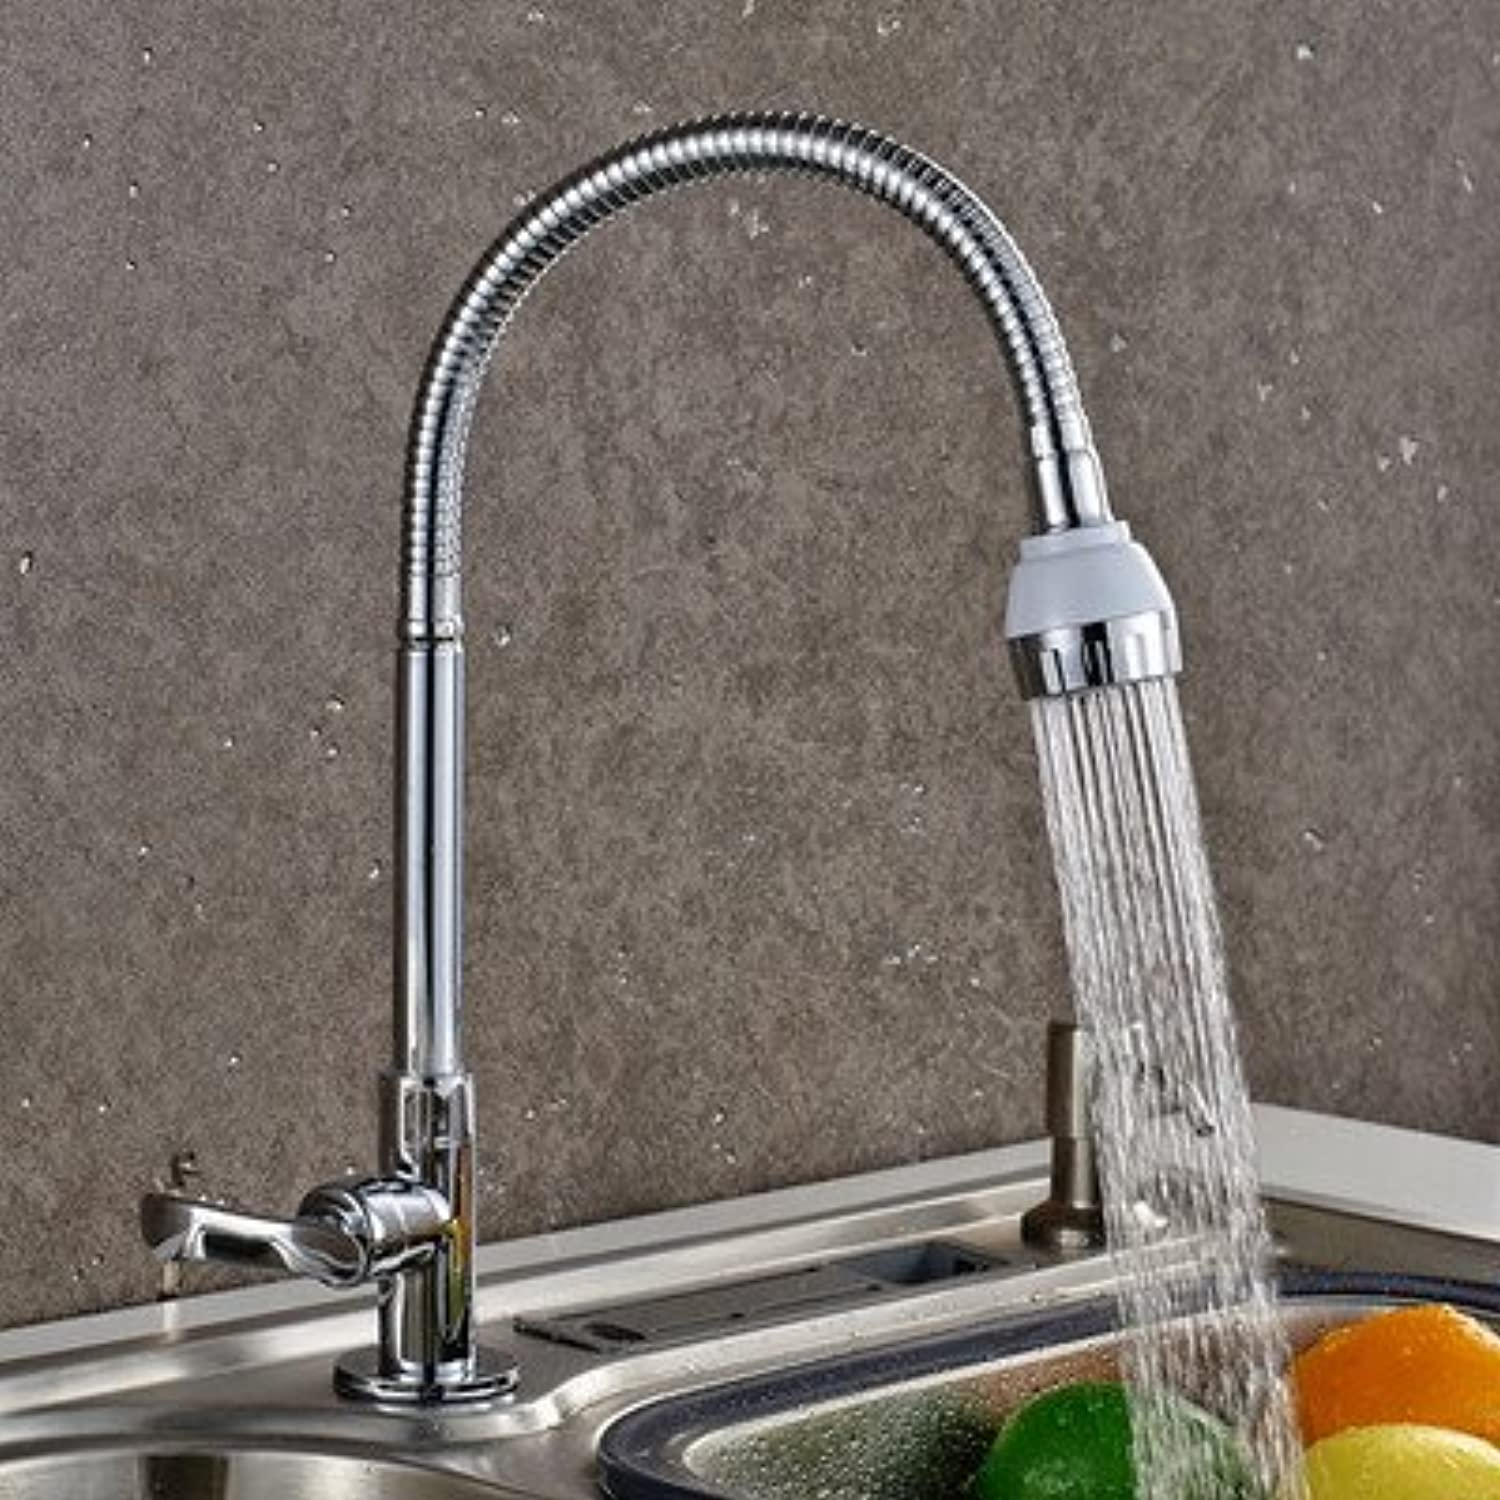 SUhang Kitchen Sink Taps A single copper kitchen sink faucet sink into the wall type water tap